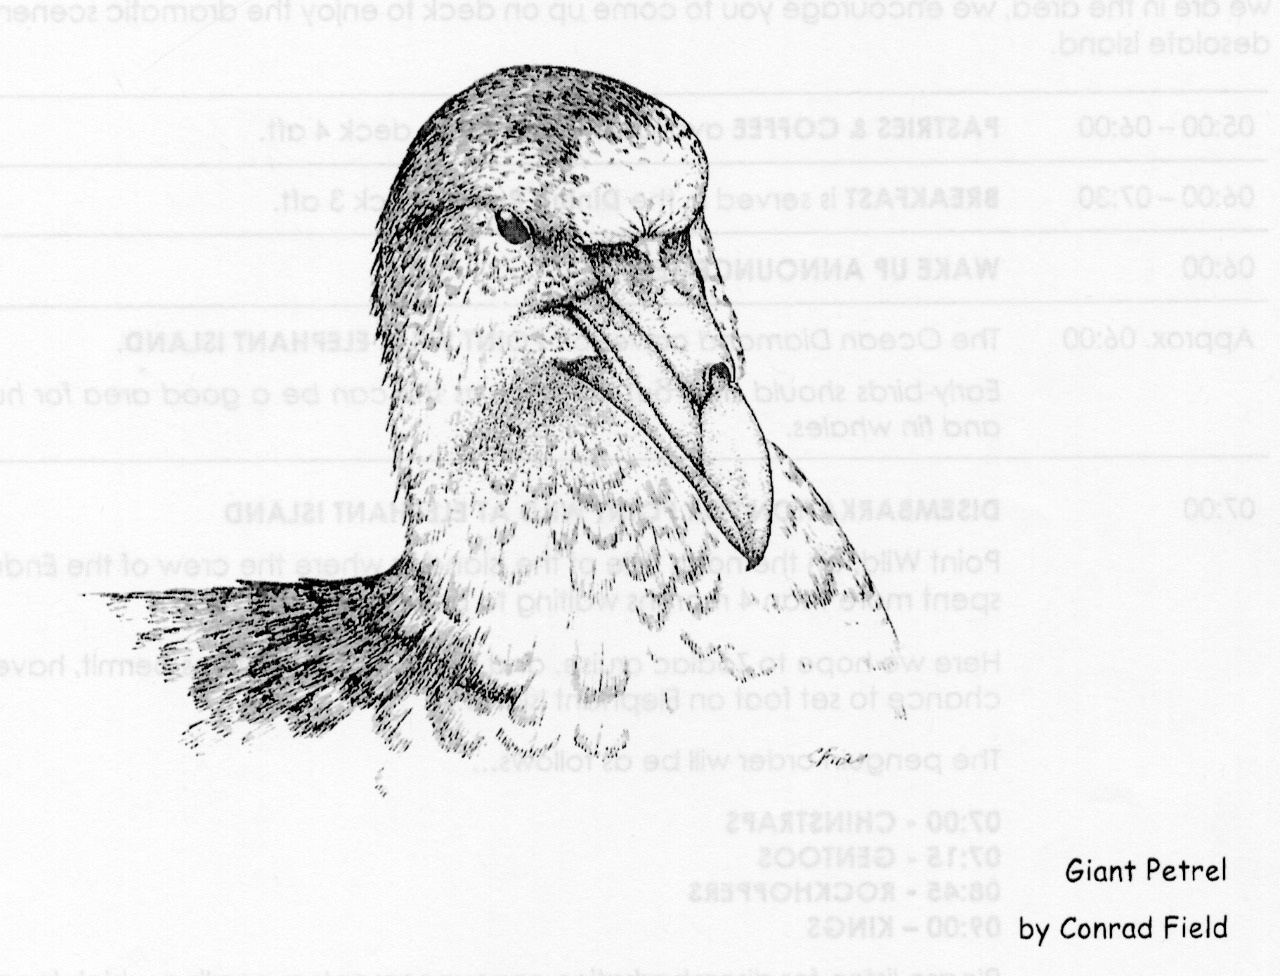 Giant Petrel - drawing by naturalist Conrad Field